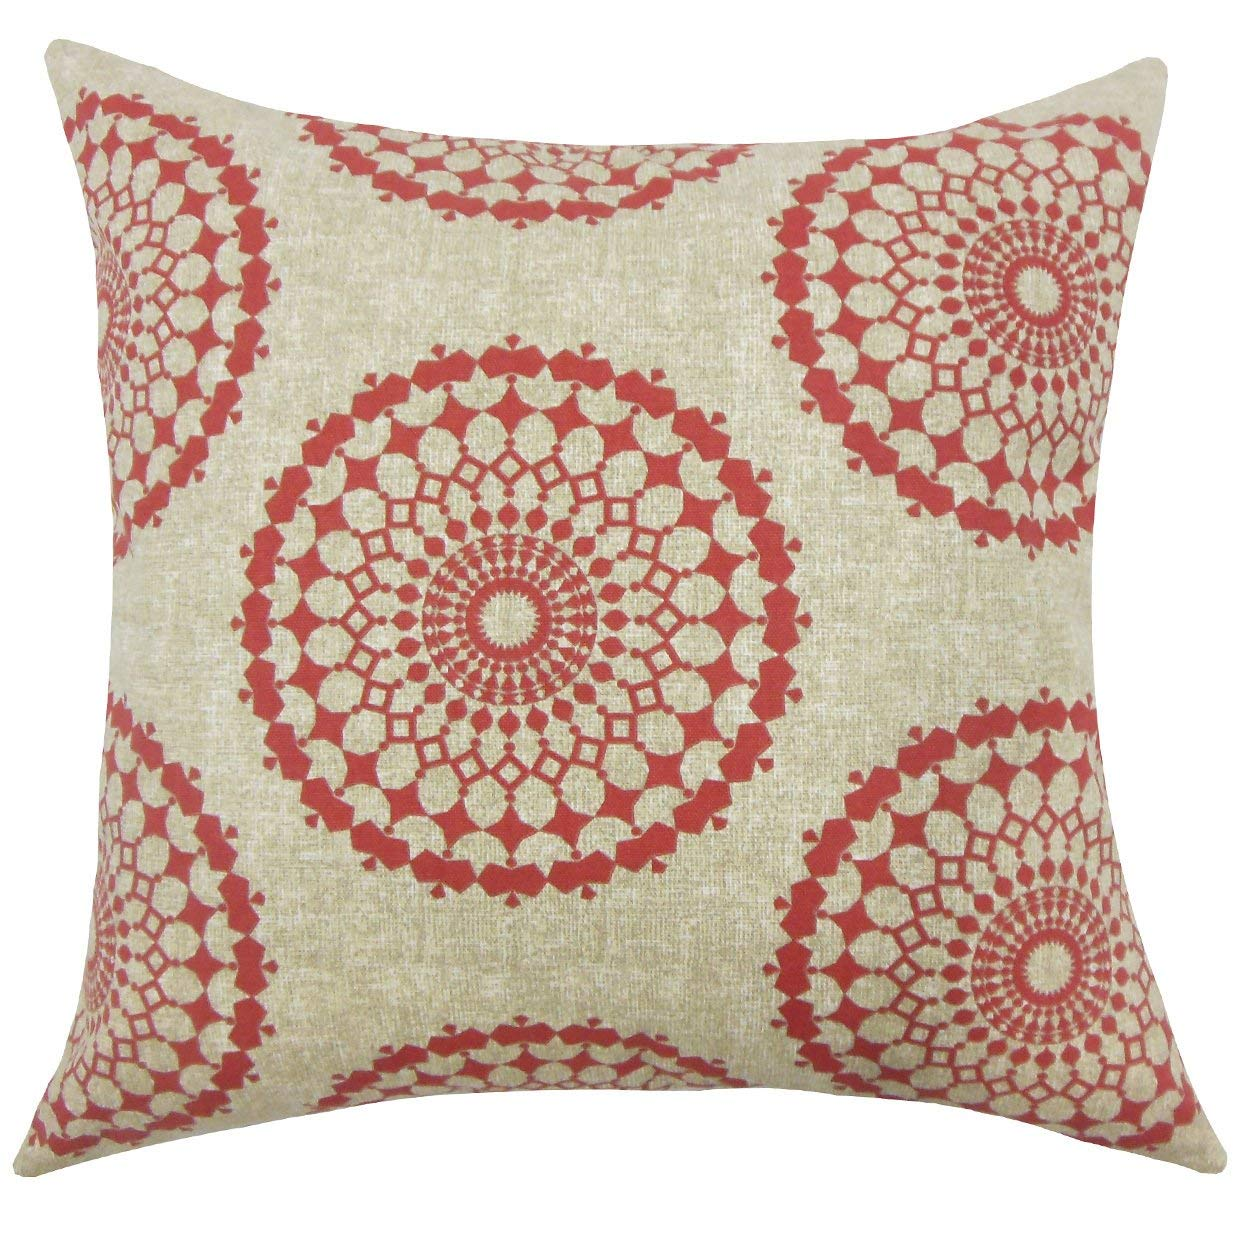 The Pillow Collection Elyes Geometric Pomegranate Down Filled Throw Pillow